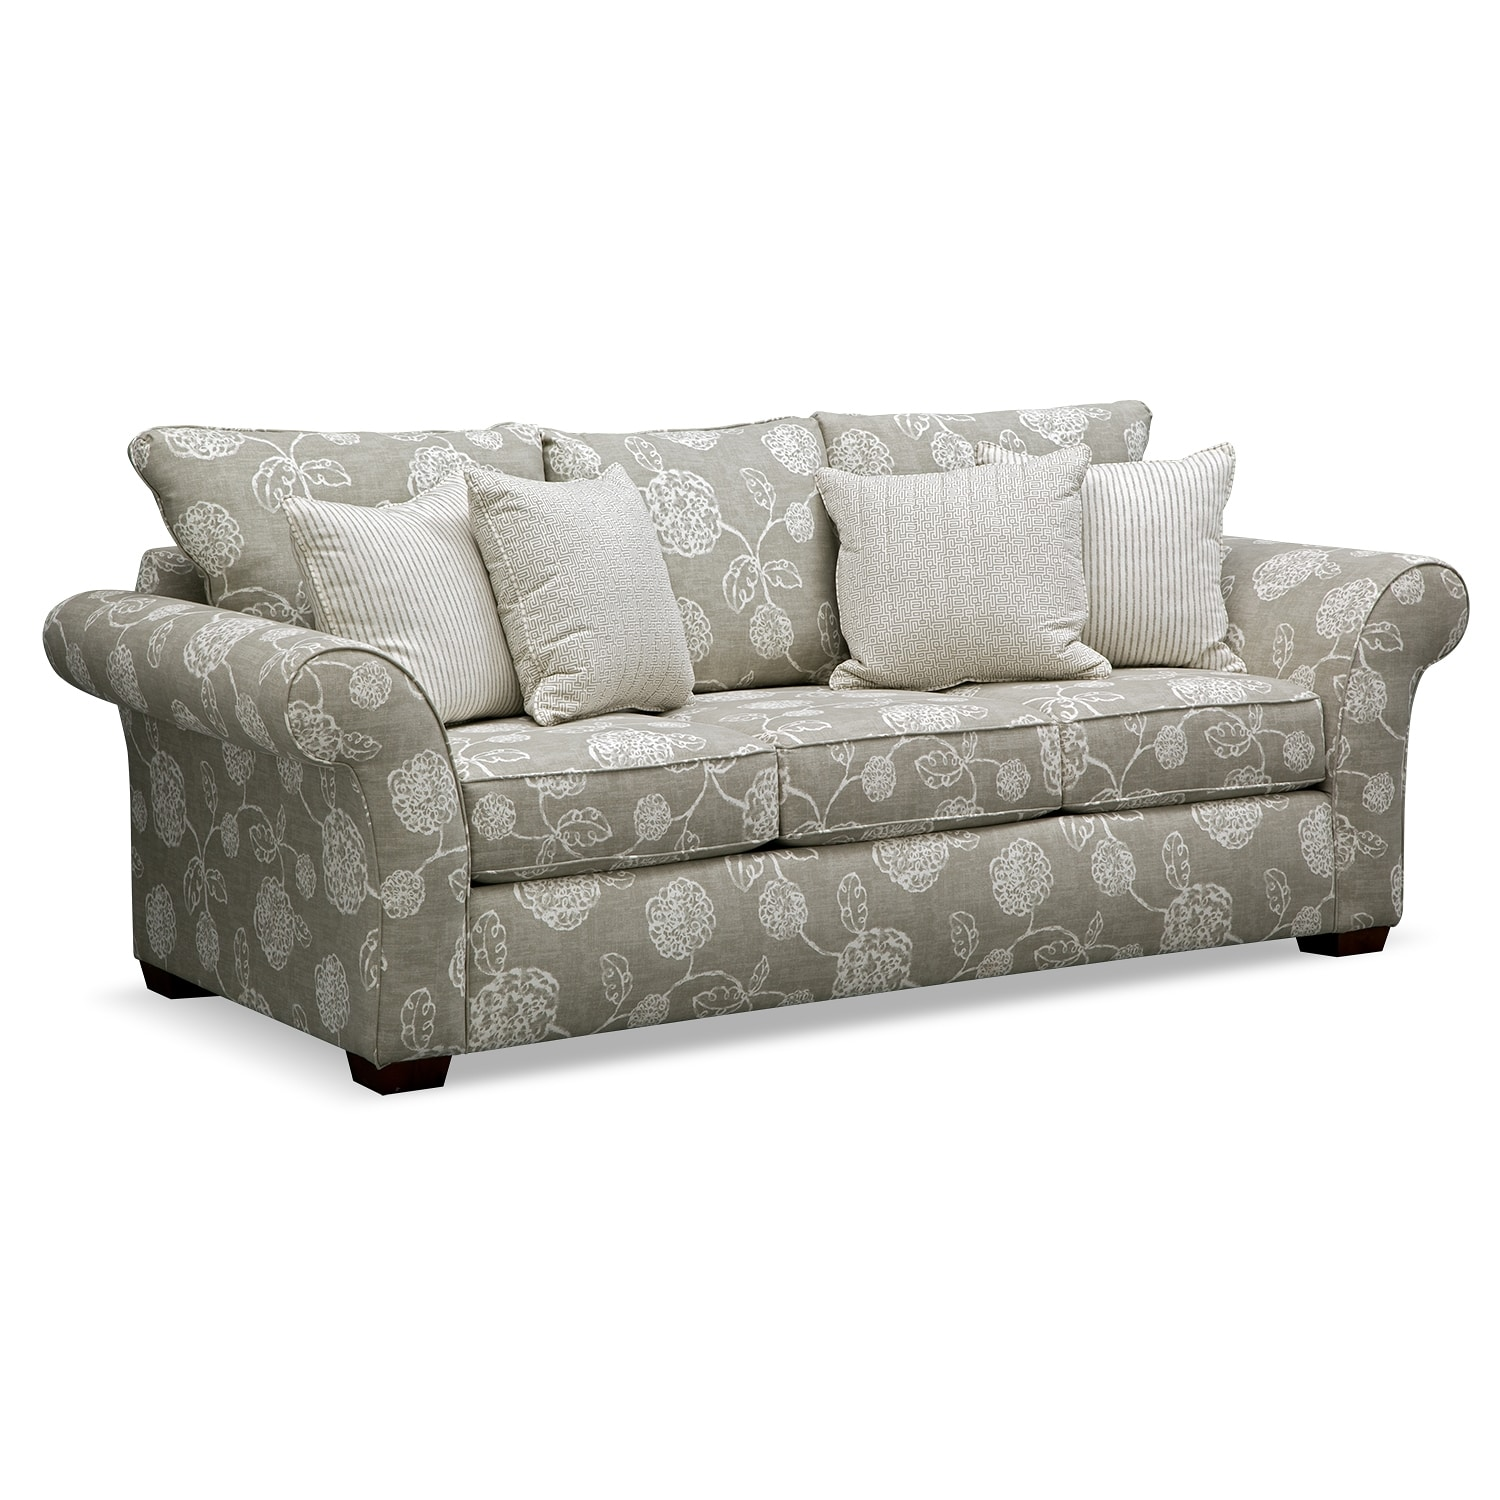 Furnishings for every room Online and Store Furniture  : 300557 from valuecity.com size 1500 x 1500 jpeg 776kB